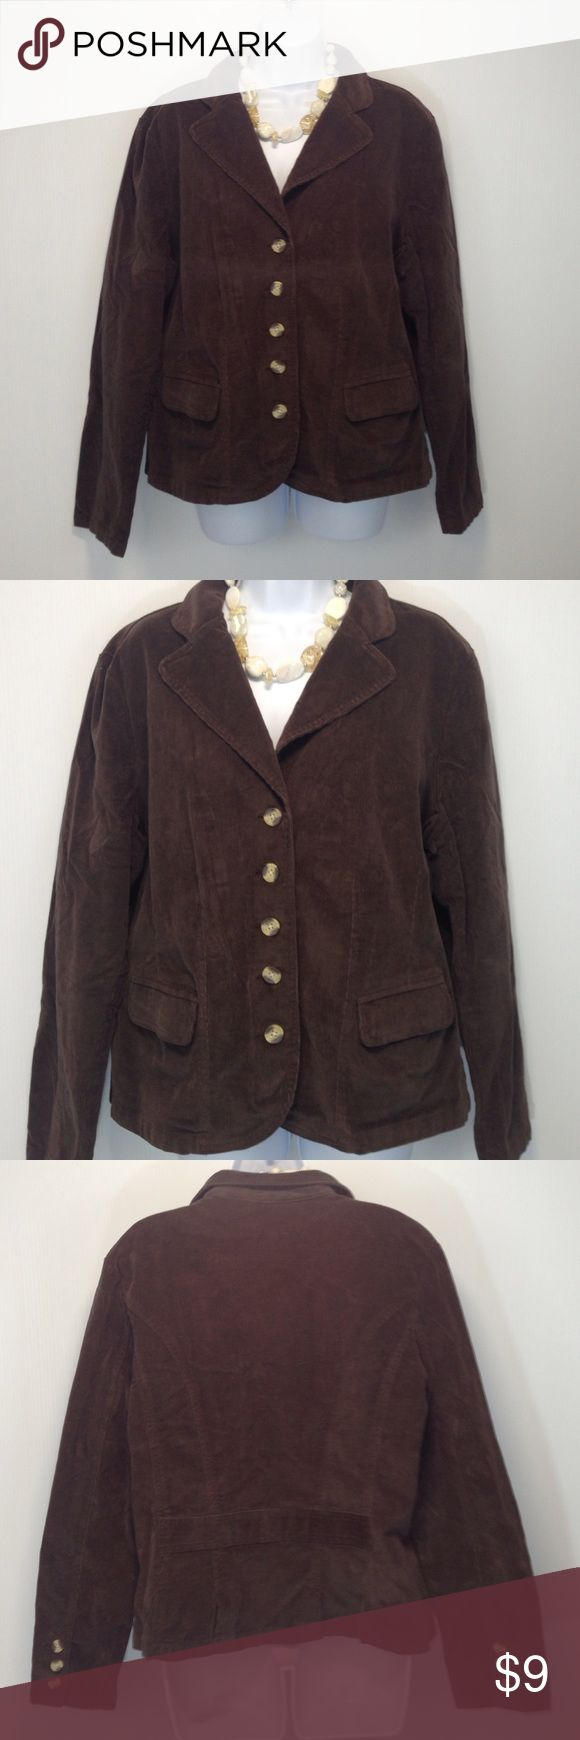 St. John's Bay Stretch Cotton Corduroy Blazer Super cute! St. John's Bay Stretch Blazer. It is a size XL and is very true to fit. It has faux wood buttons on the front closure and sleeves. The necklace can be seen in an alternate listing. St. John's Bay Jackets & Coats Blazers